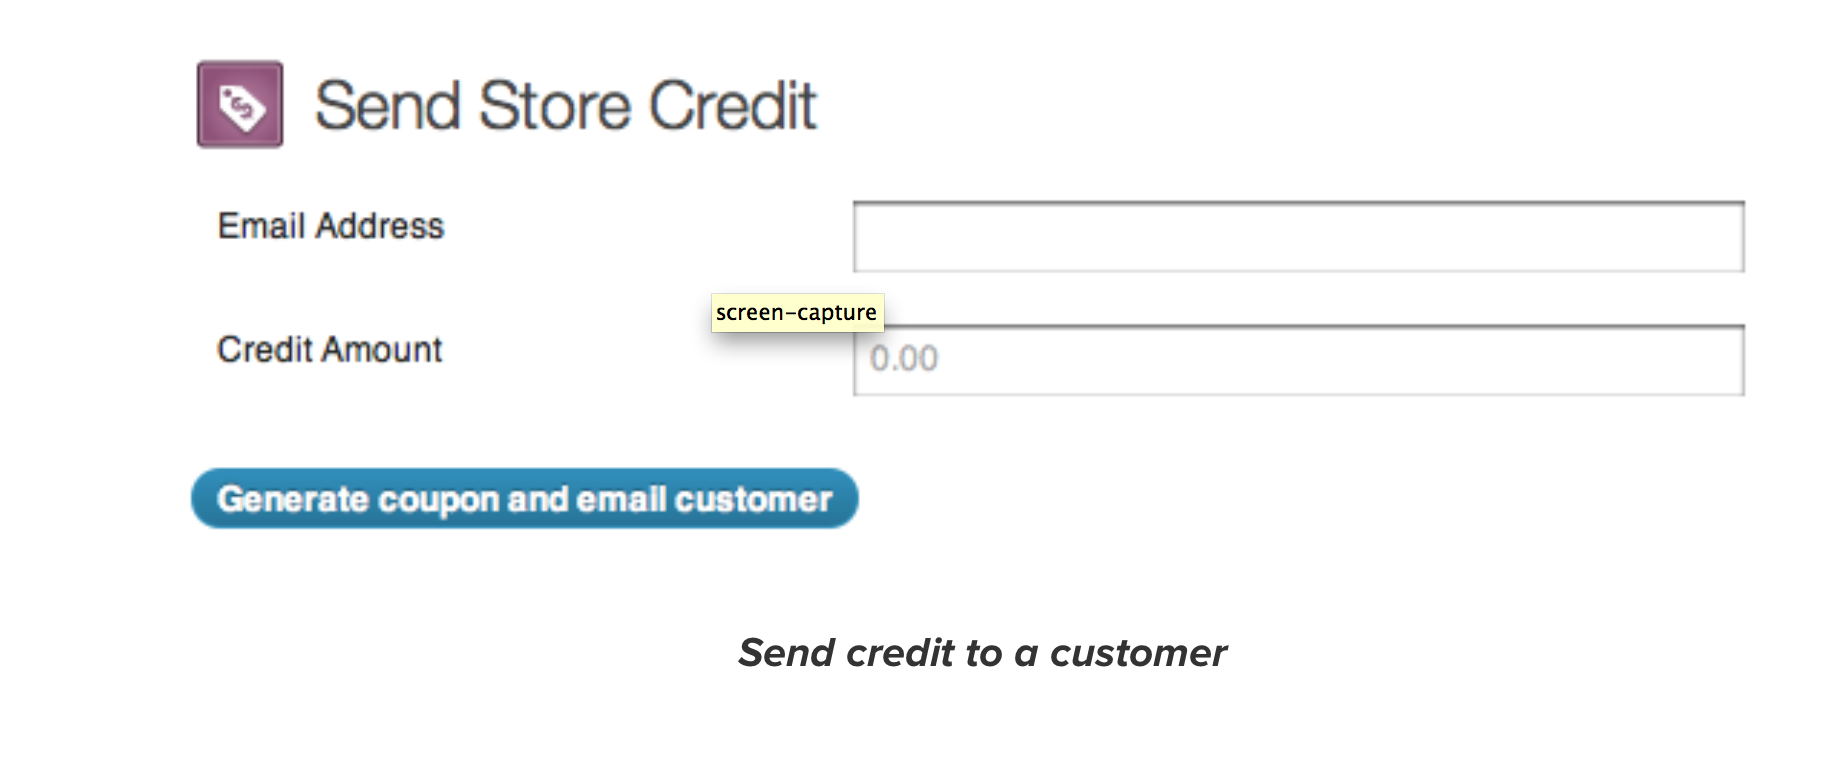 WooCommerce Store Credit Send Store Credit